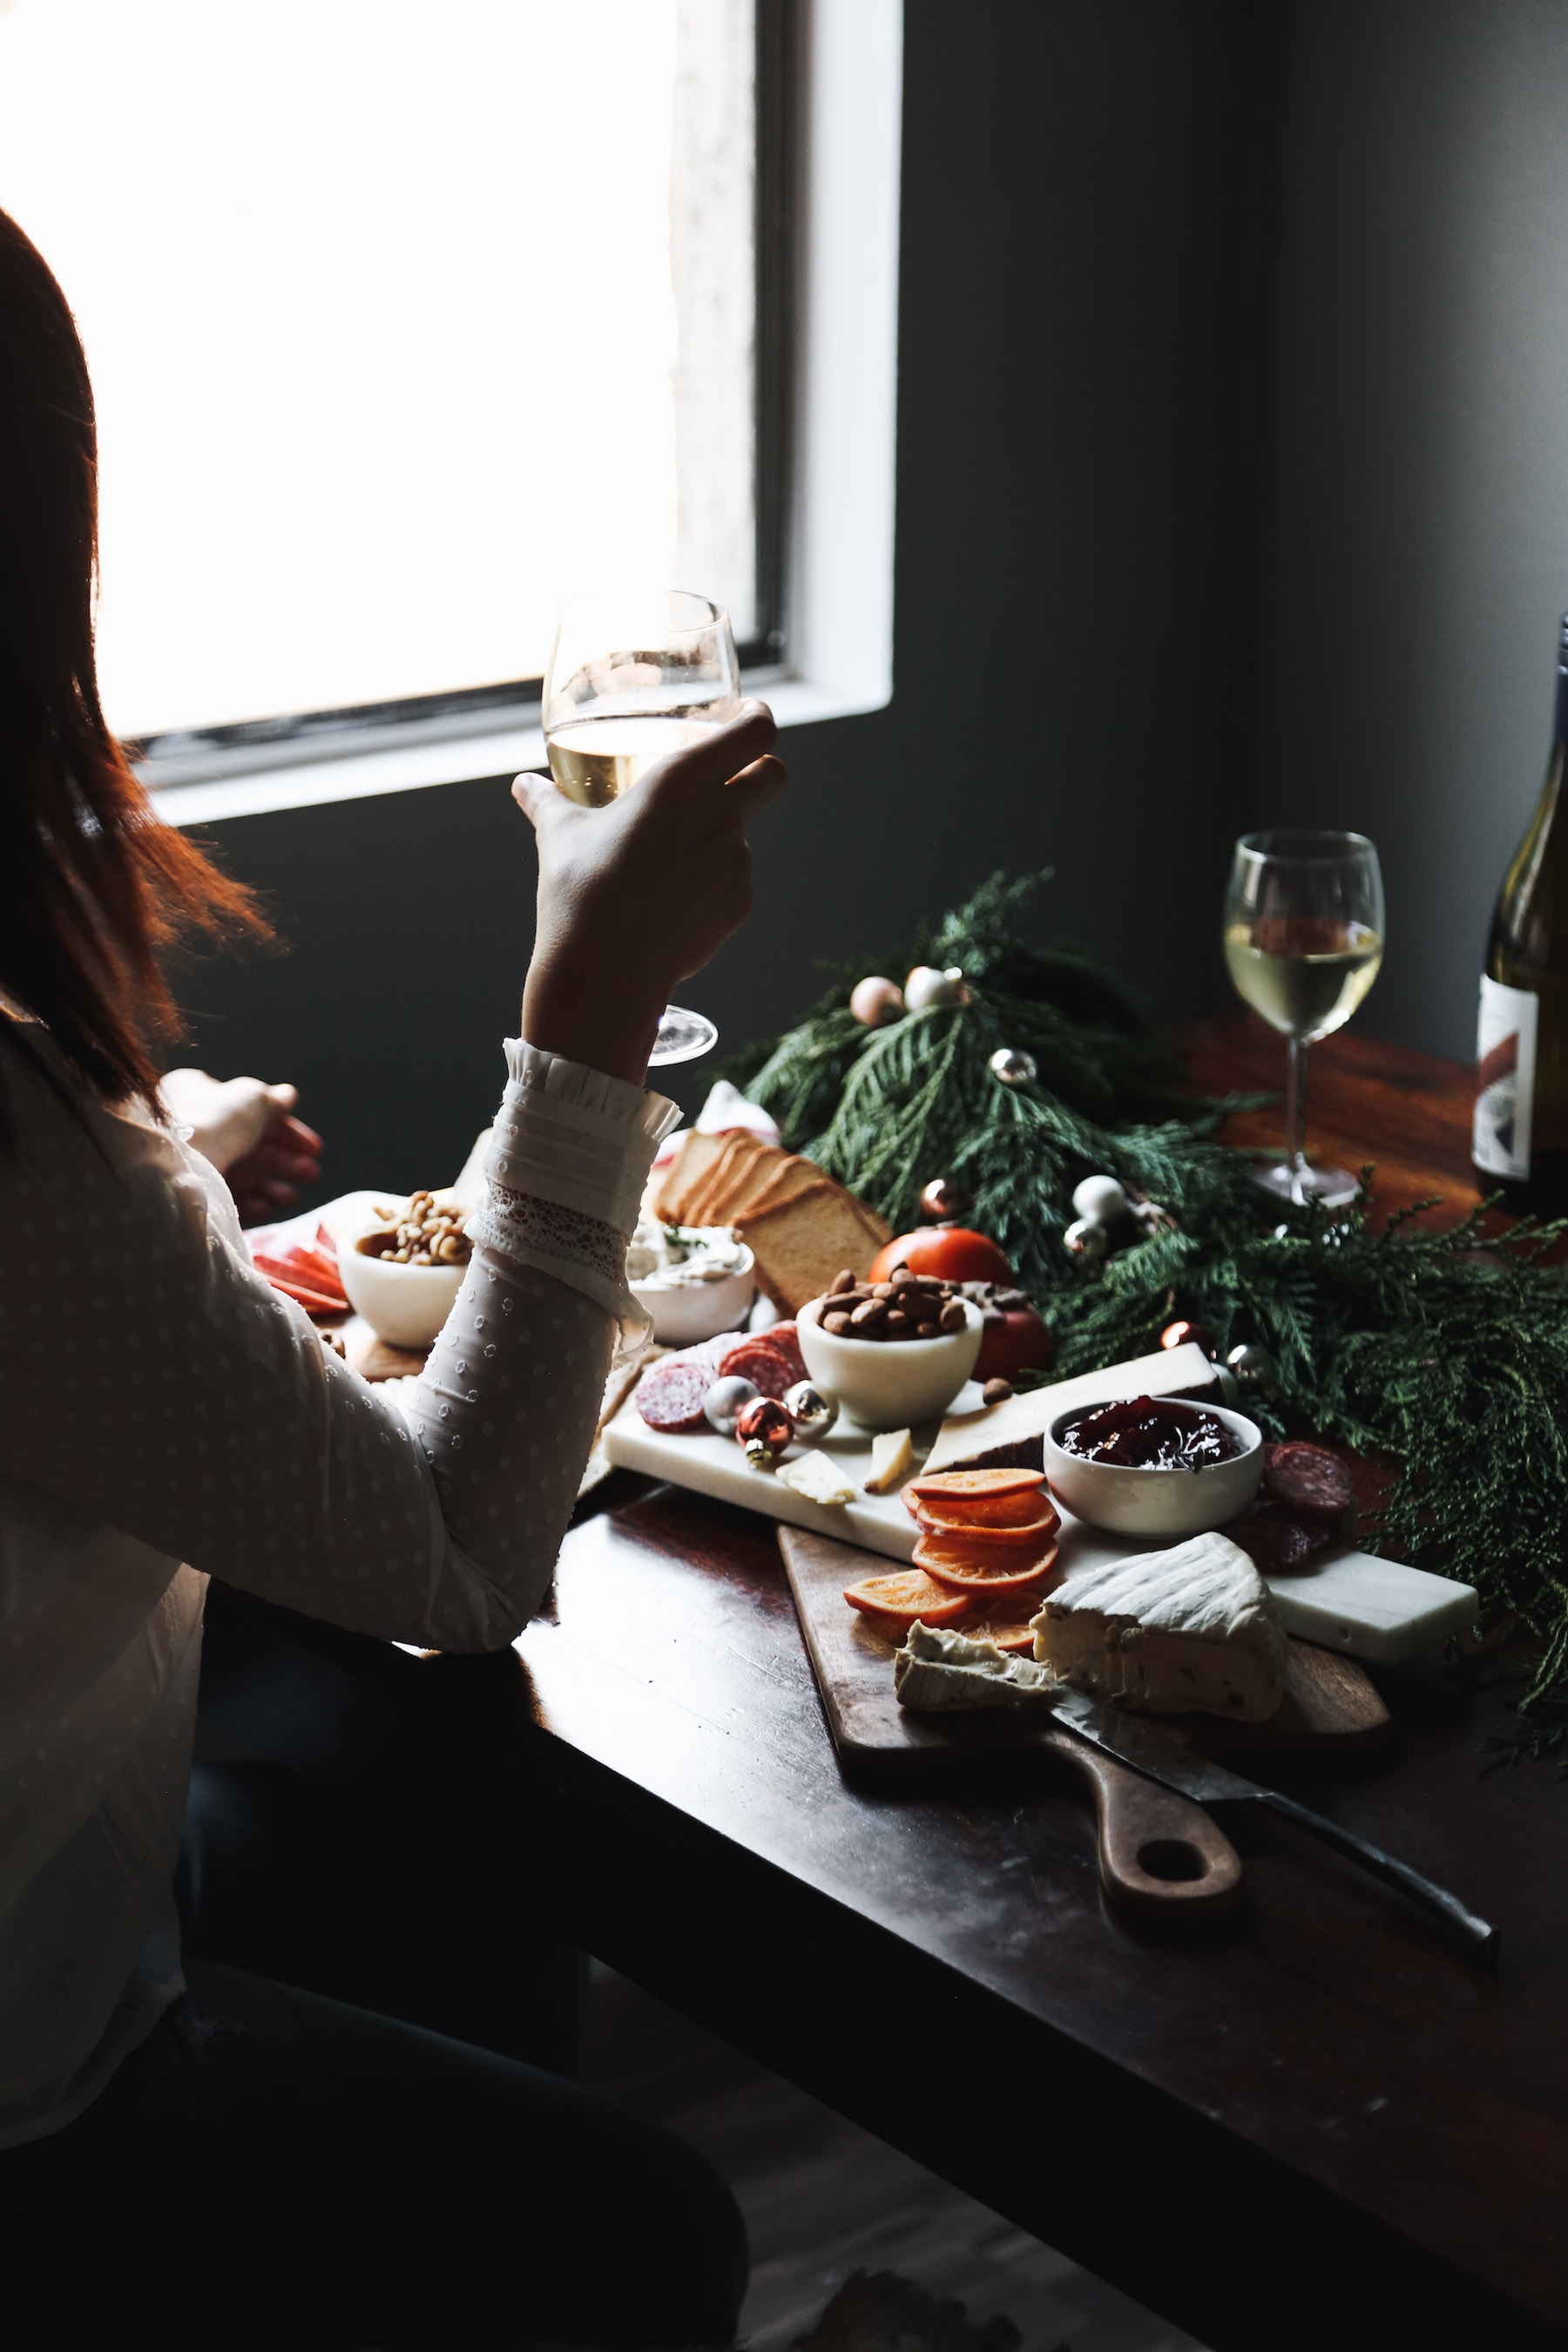 how to create a holiday cheeseboard for under 35 dollars17.jpg